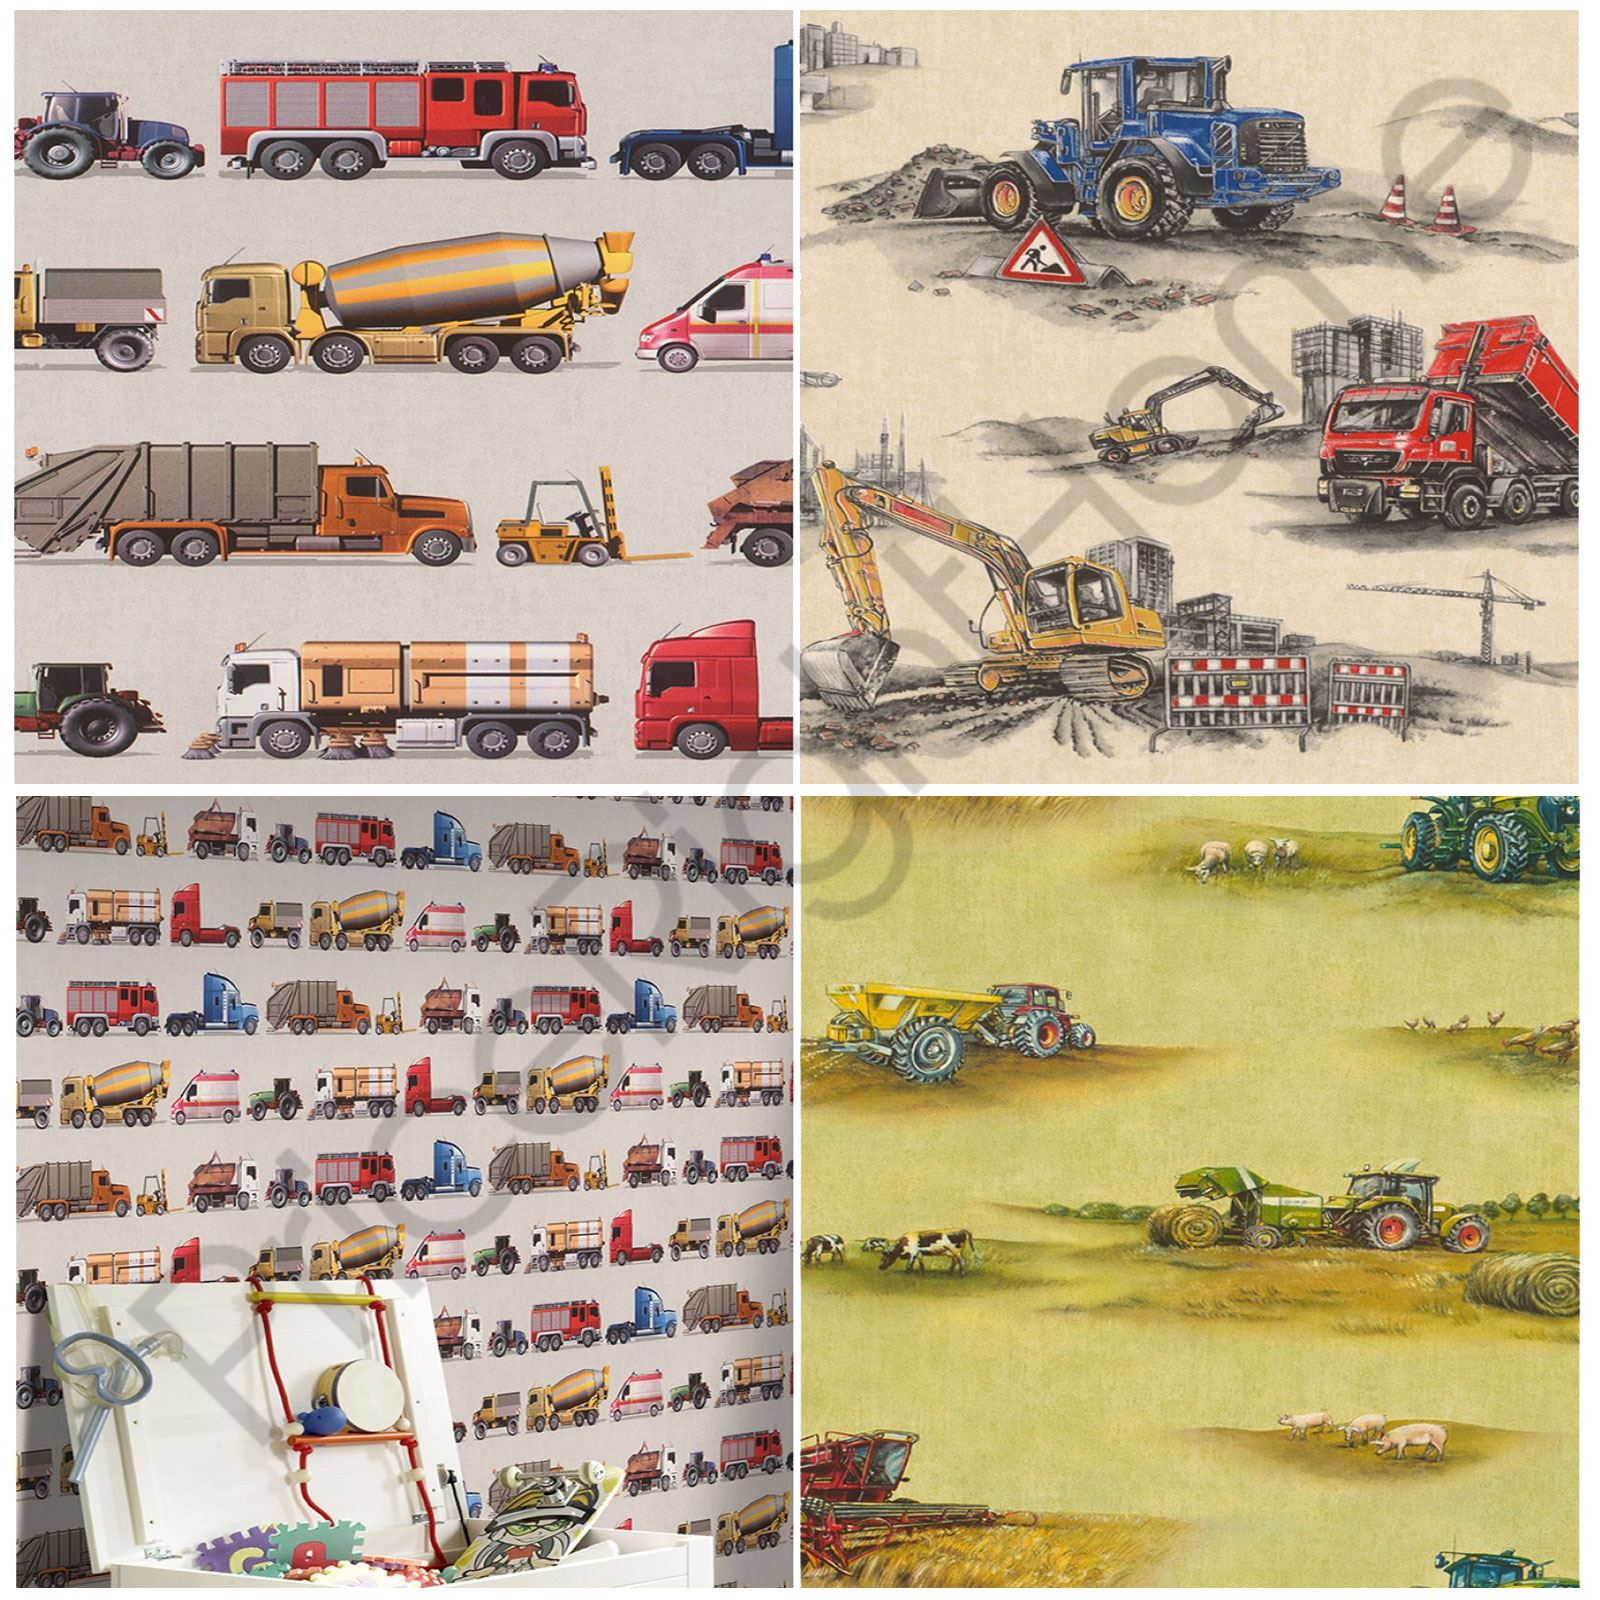 RASCH TRANSPORT WALLPAPER CONSTRUCTION TRACTOR VEHICLES KIDS BEDROOM ...